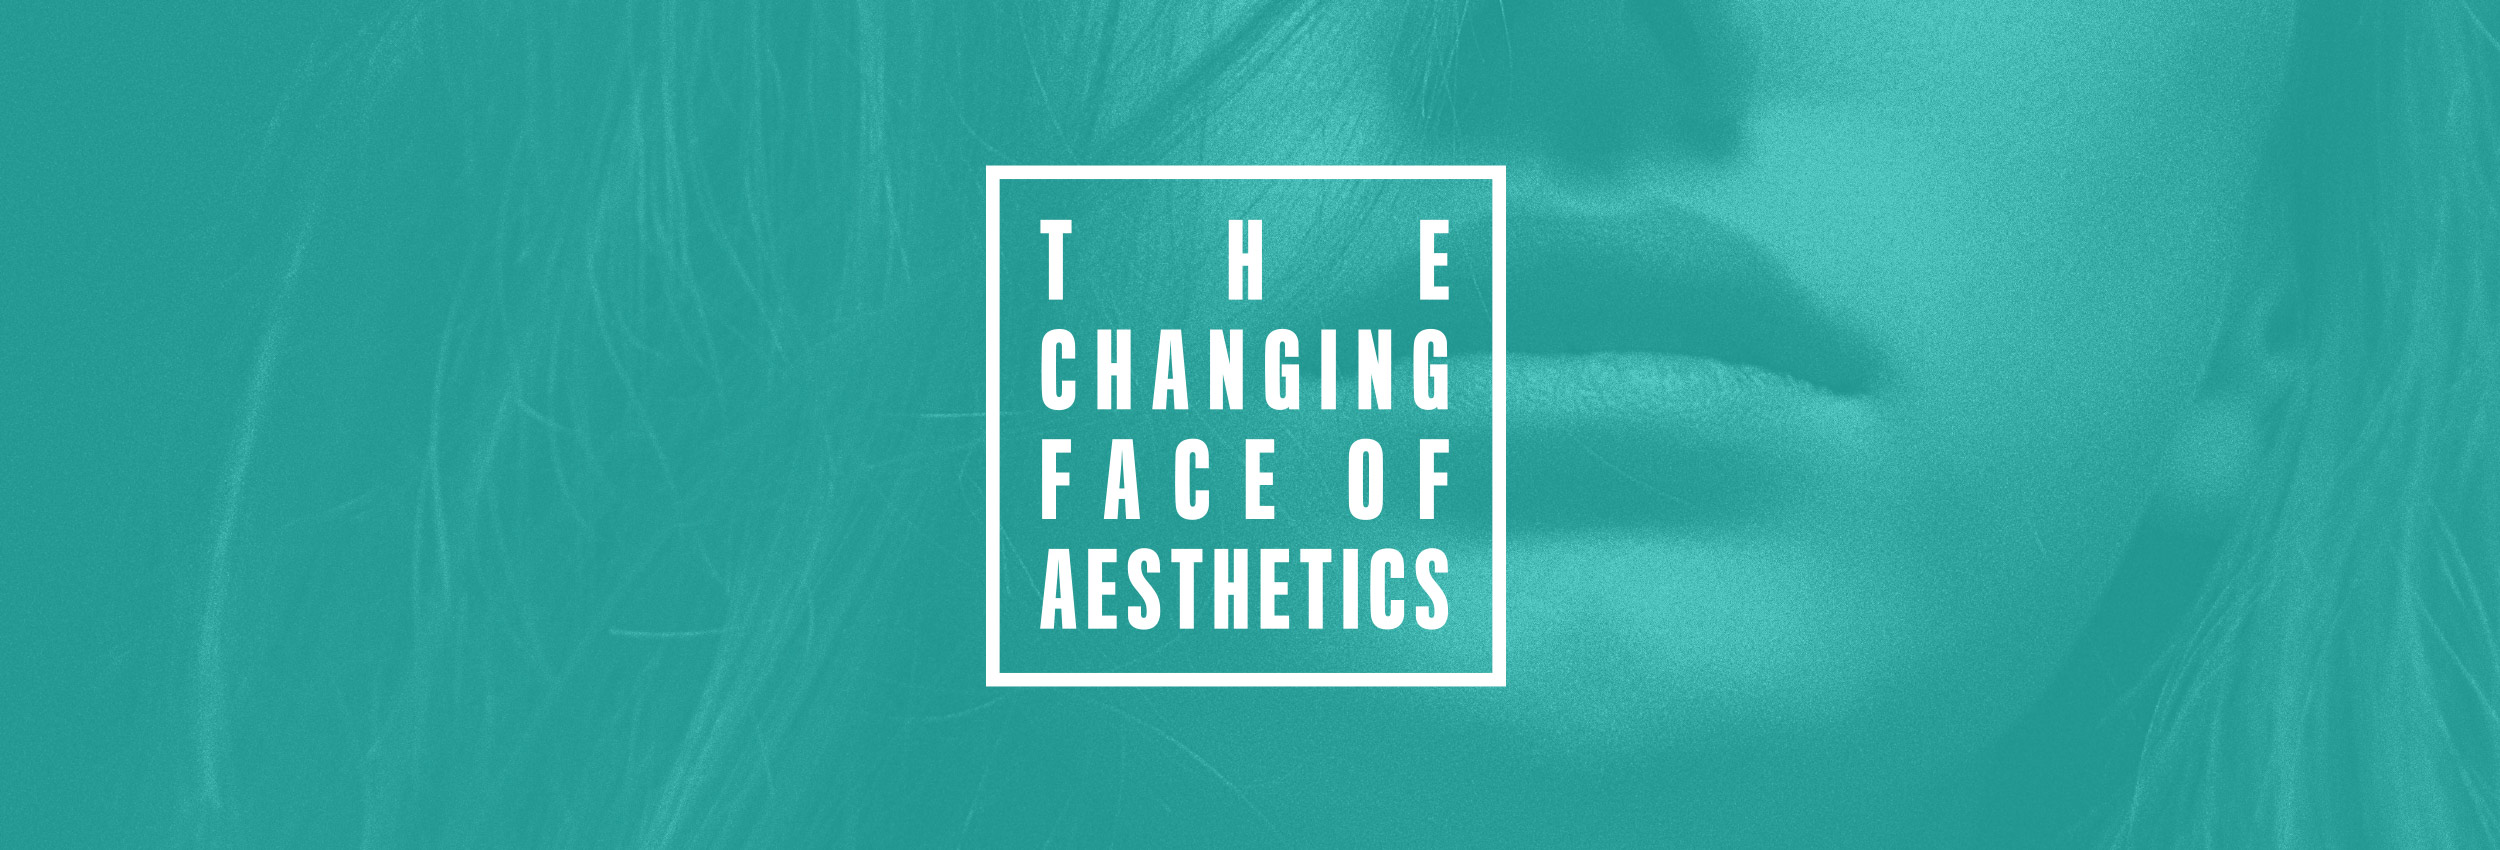 The Changing Face of Aesthetics 01.jpg